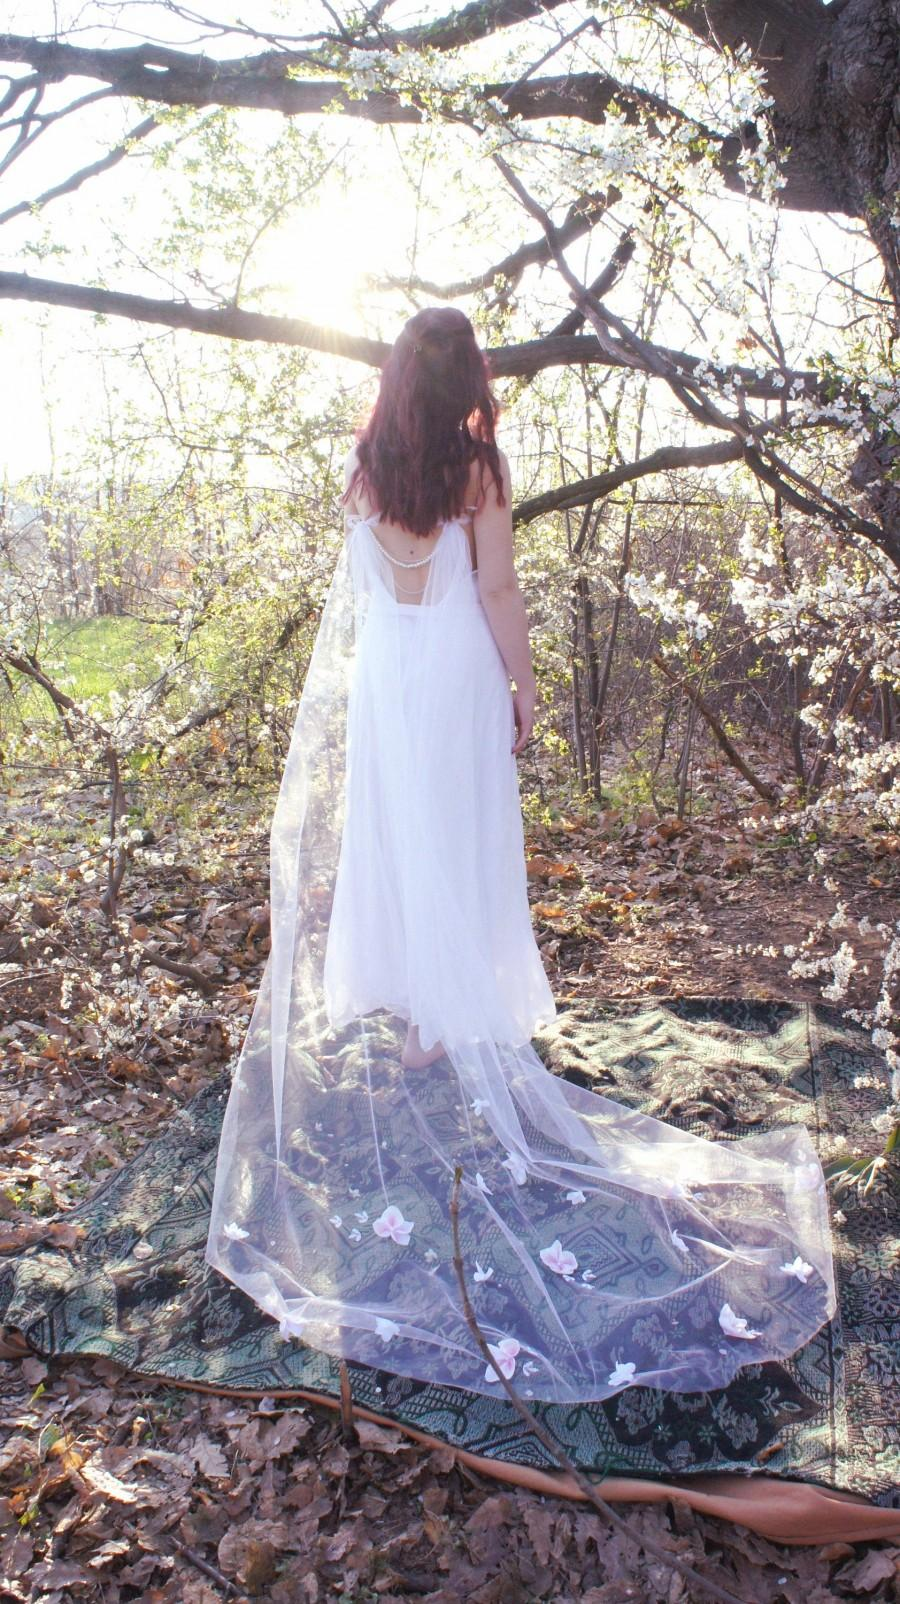 Mariage - Bridal cape veil, Tulle cape veil, Bridal mesh cover up, Bridal separates, Bridal capelet, Shoulder wedding veil, Wedding dress cape veil